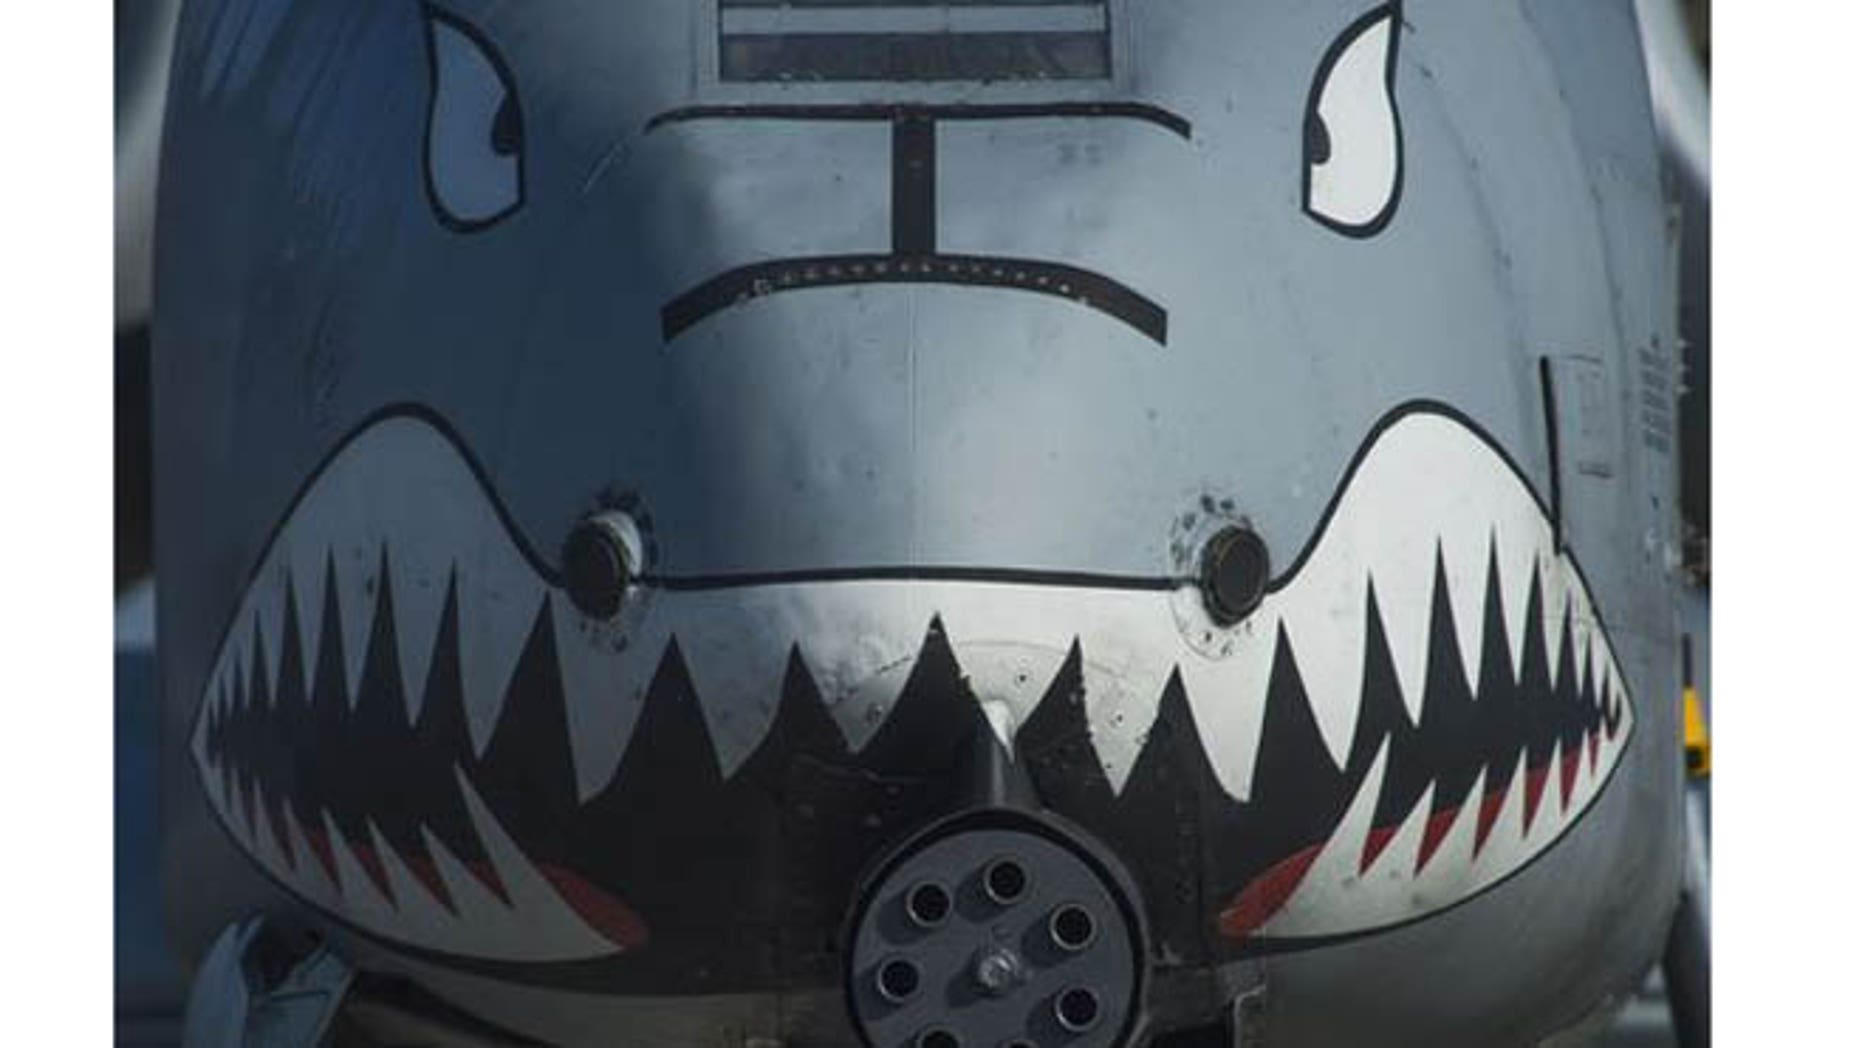 The nose of a U.S. Air Force A-10 Thunderbolt II displays a painted set of eyes and teeth over the aircraft's 30-mm. GAU-8 Avenger rotary cannon during the 74th Expeditionary Fighter Squadron's deployment in support of Operation Atlantic Resolve at Graf Ignatievo, Bulgaria, March 18, 2016. (U.S. Air Force)